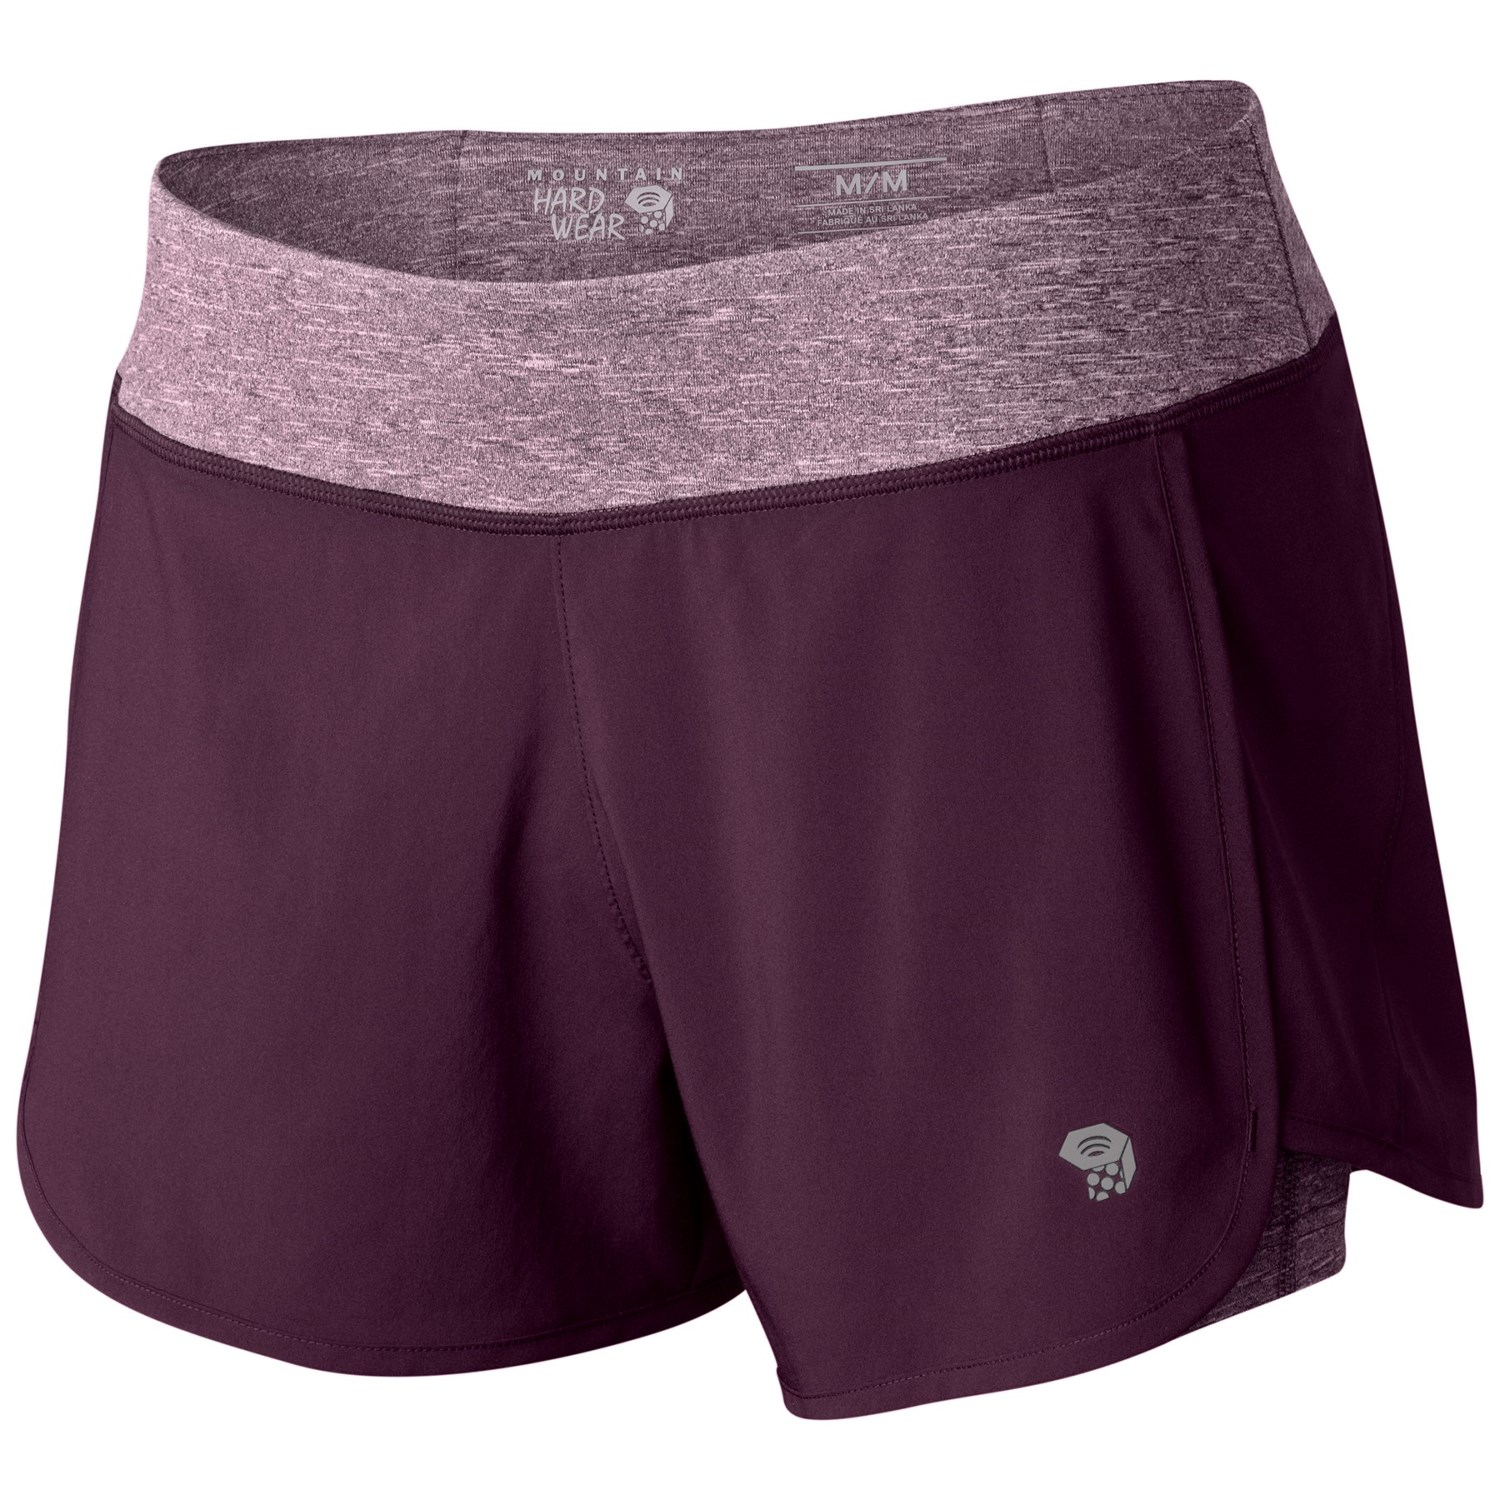 Active stretch: The 2-in-1 shorts features a lightweight stretch woven outer, for full range of motion, and built-in inner shorts providing a locked-in feel for ultimate comfort and security.